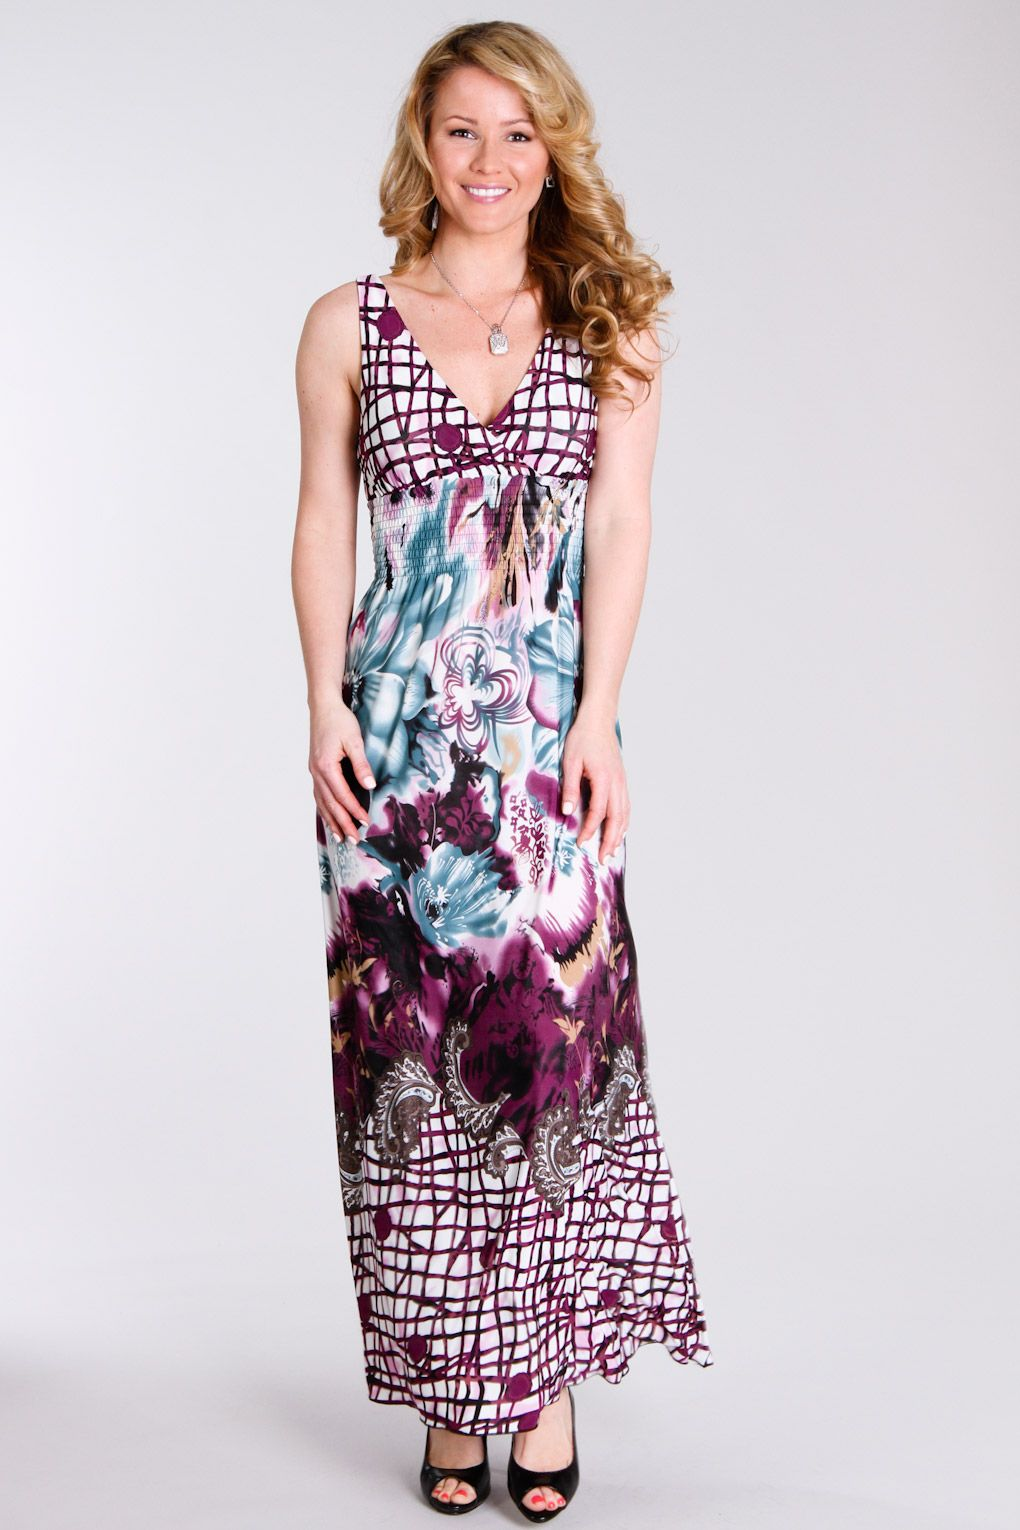 d749f0ecbe35 Our newest Maxi dress to hit the store! It s a must have for summer.  Available in two colors now